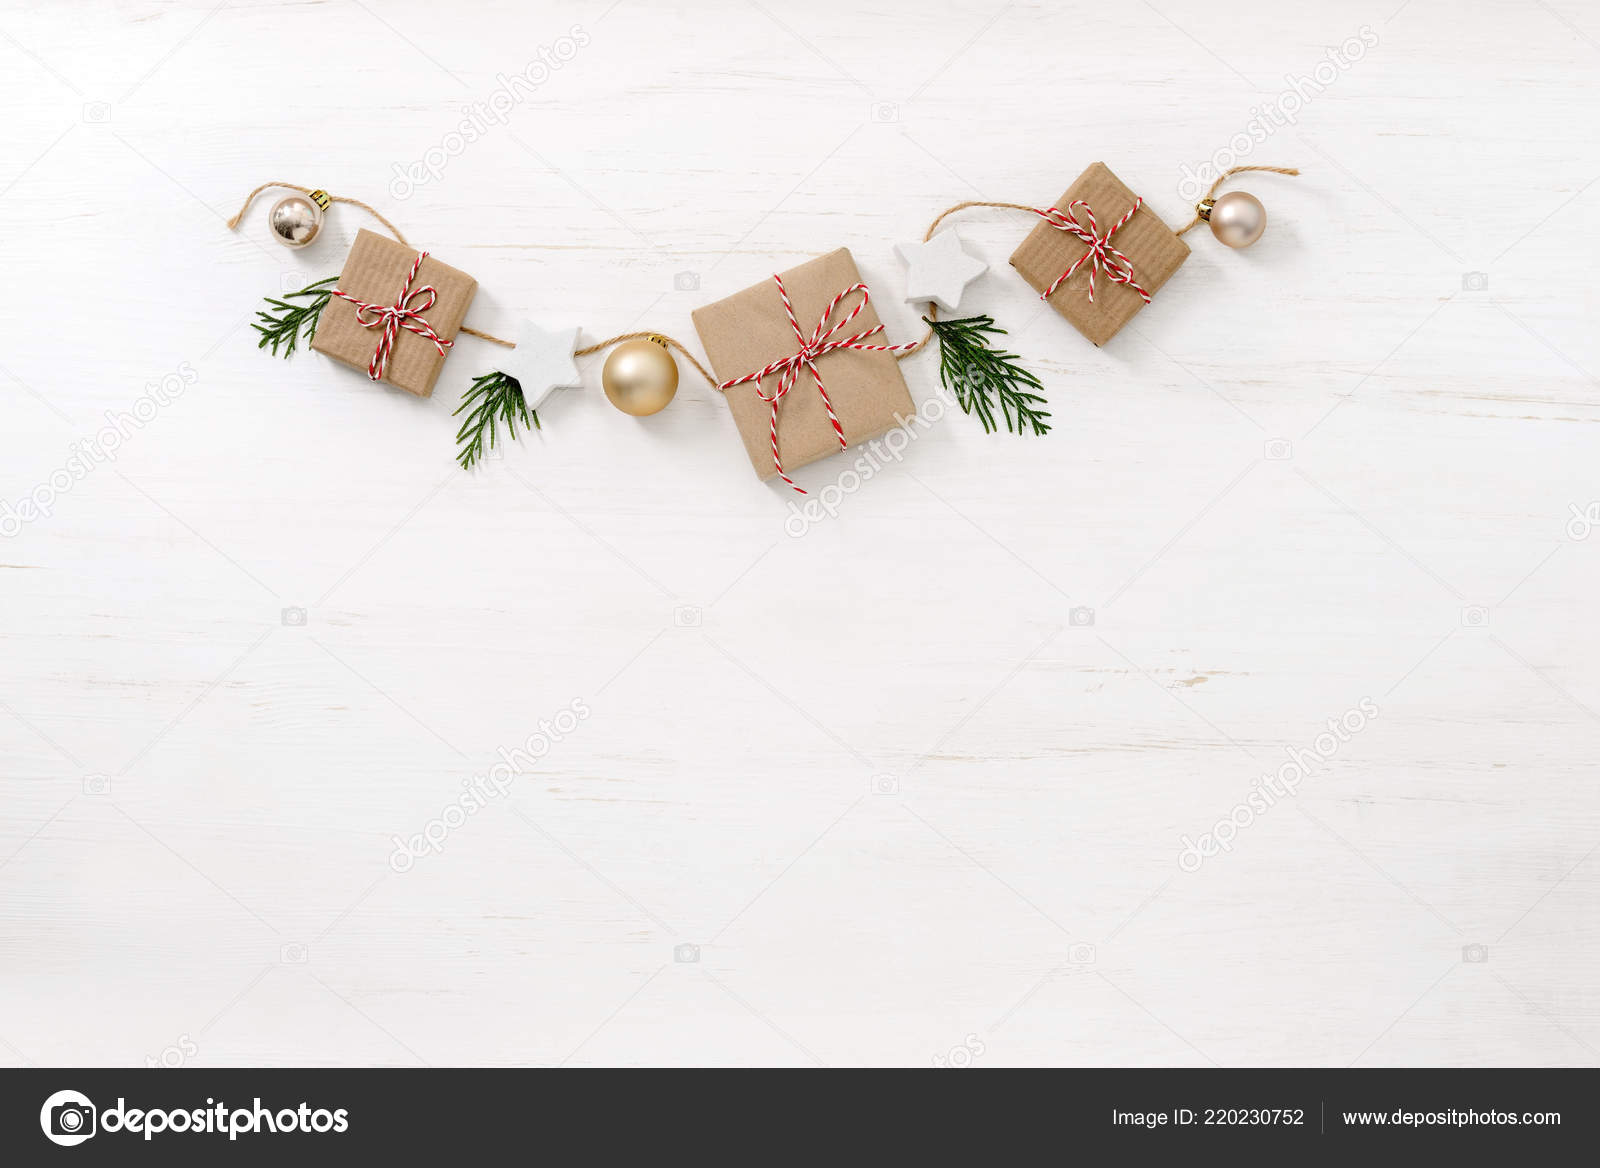 Noel Christmas Rustic Home Decor Background Space Greeting Text Flat